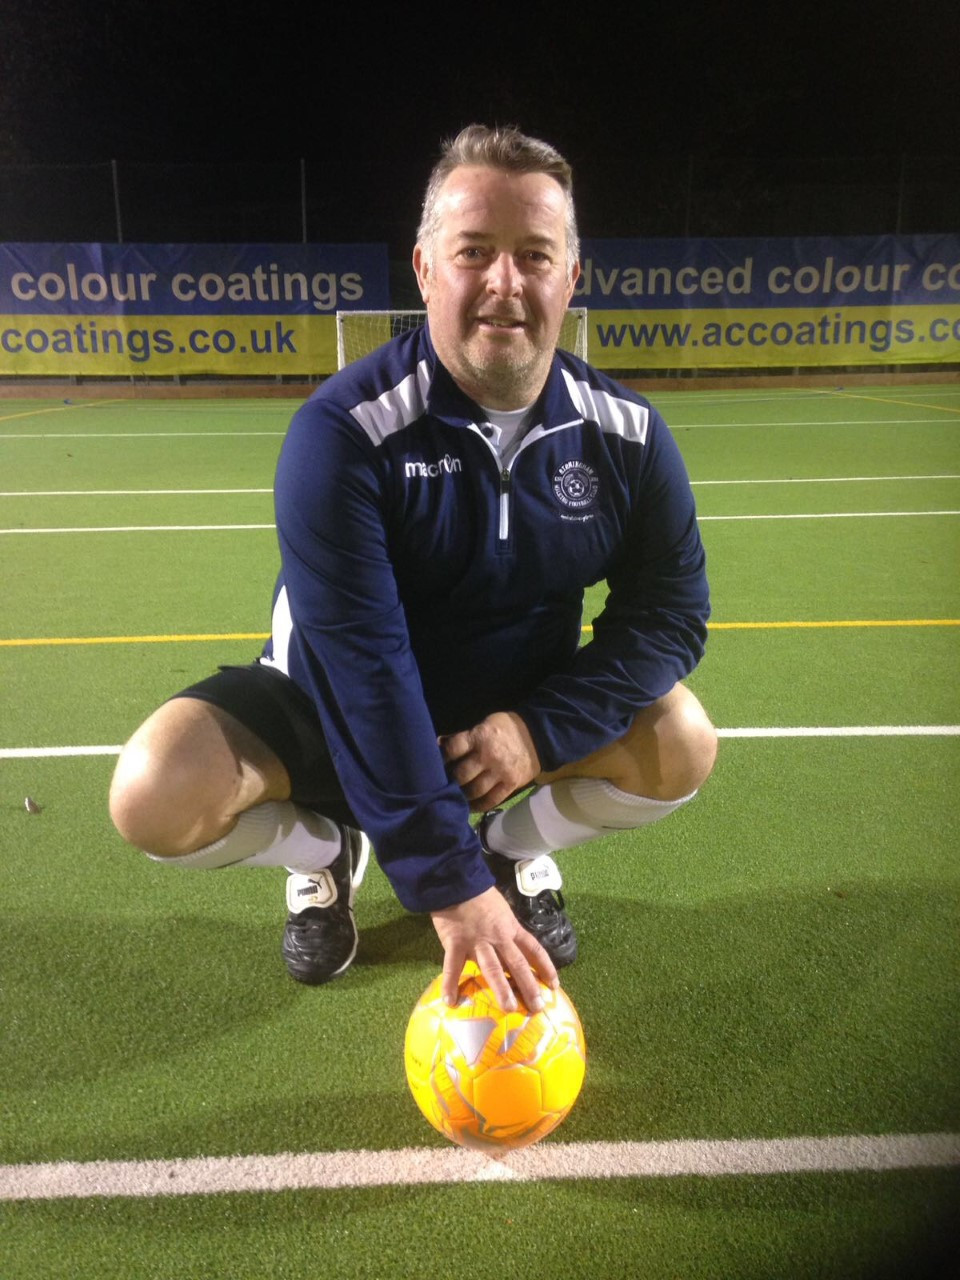 David Castle - England Over 50's First Team Coach